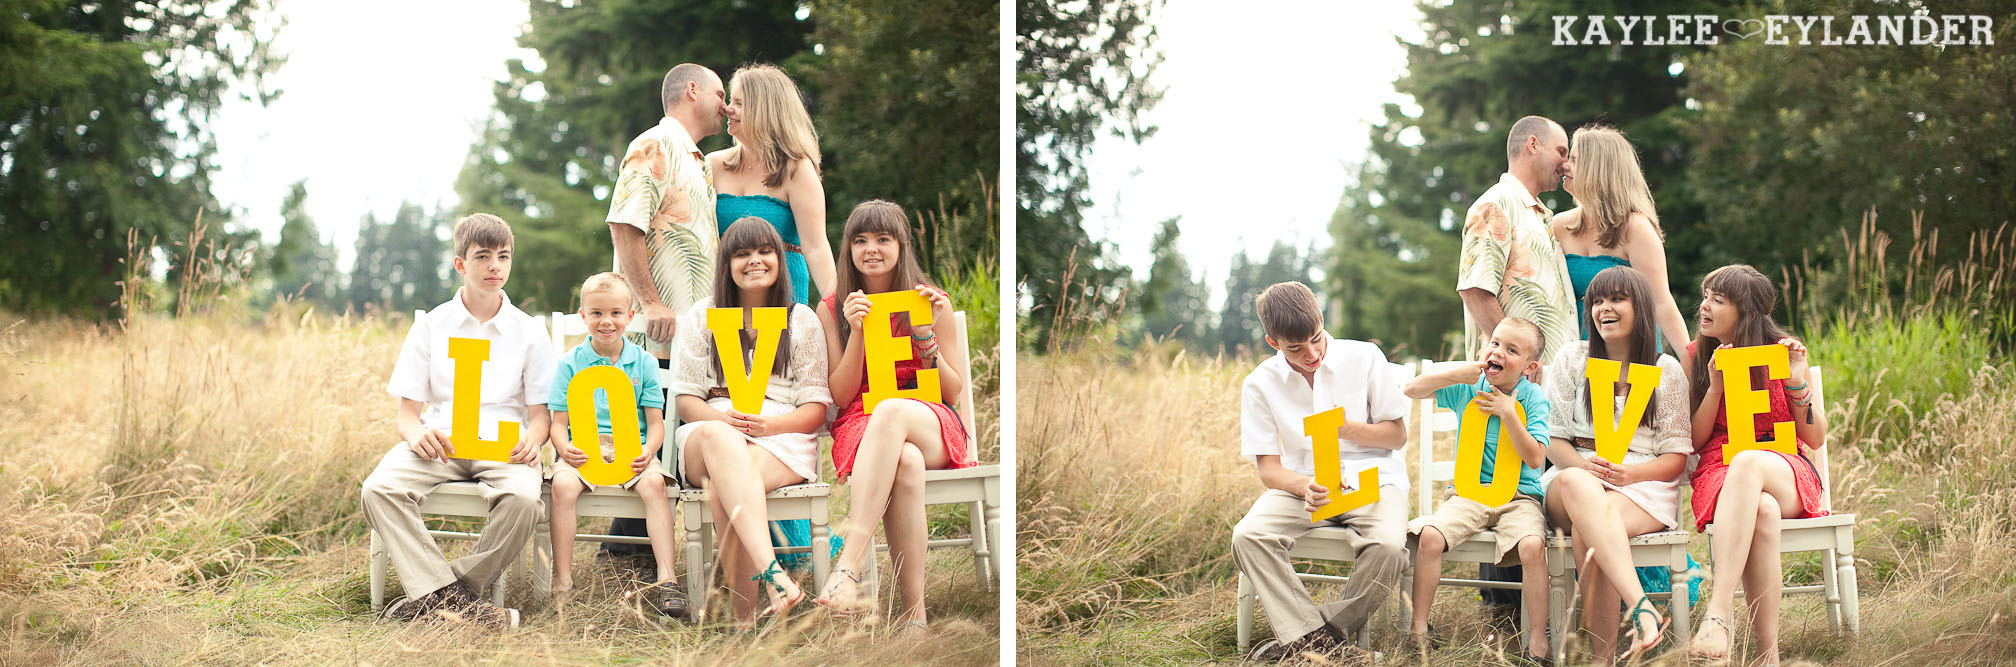 Fun Family Poses http://eylanderphotography.com/2012/08/lake-stevens-fun-family-portraits-time-flies/